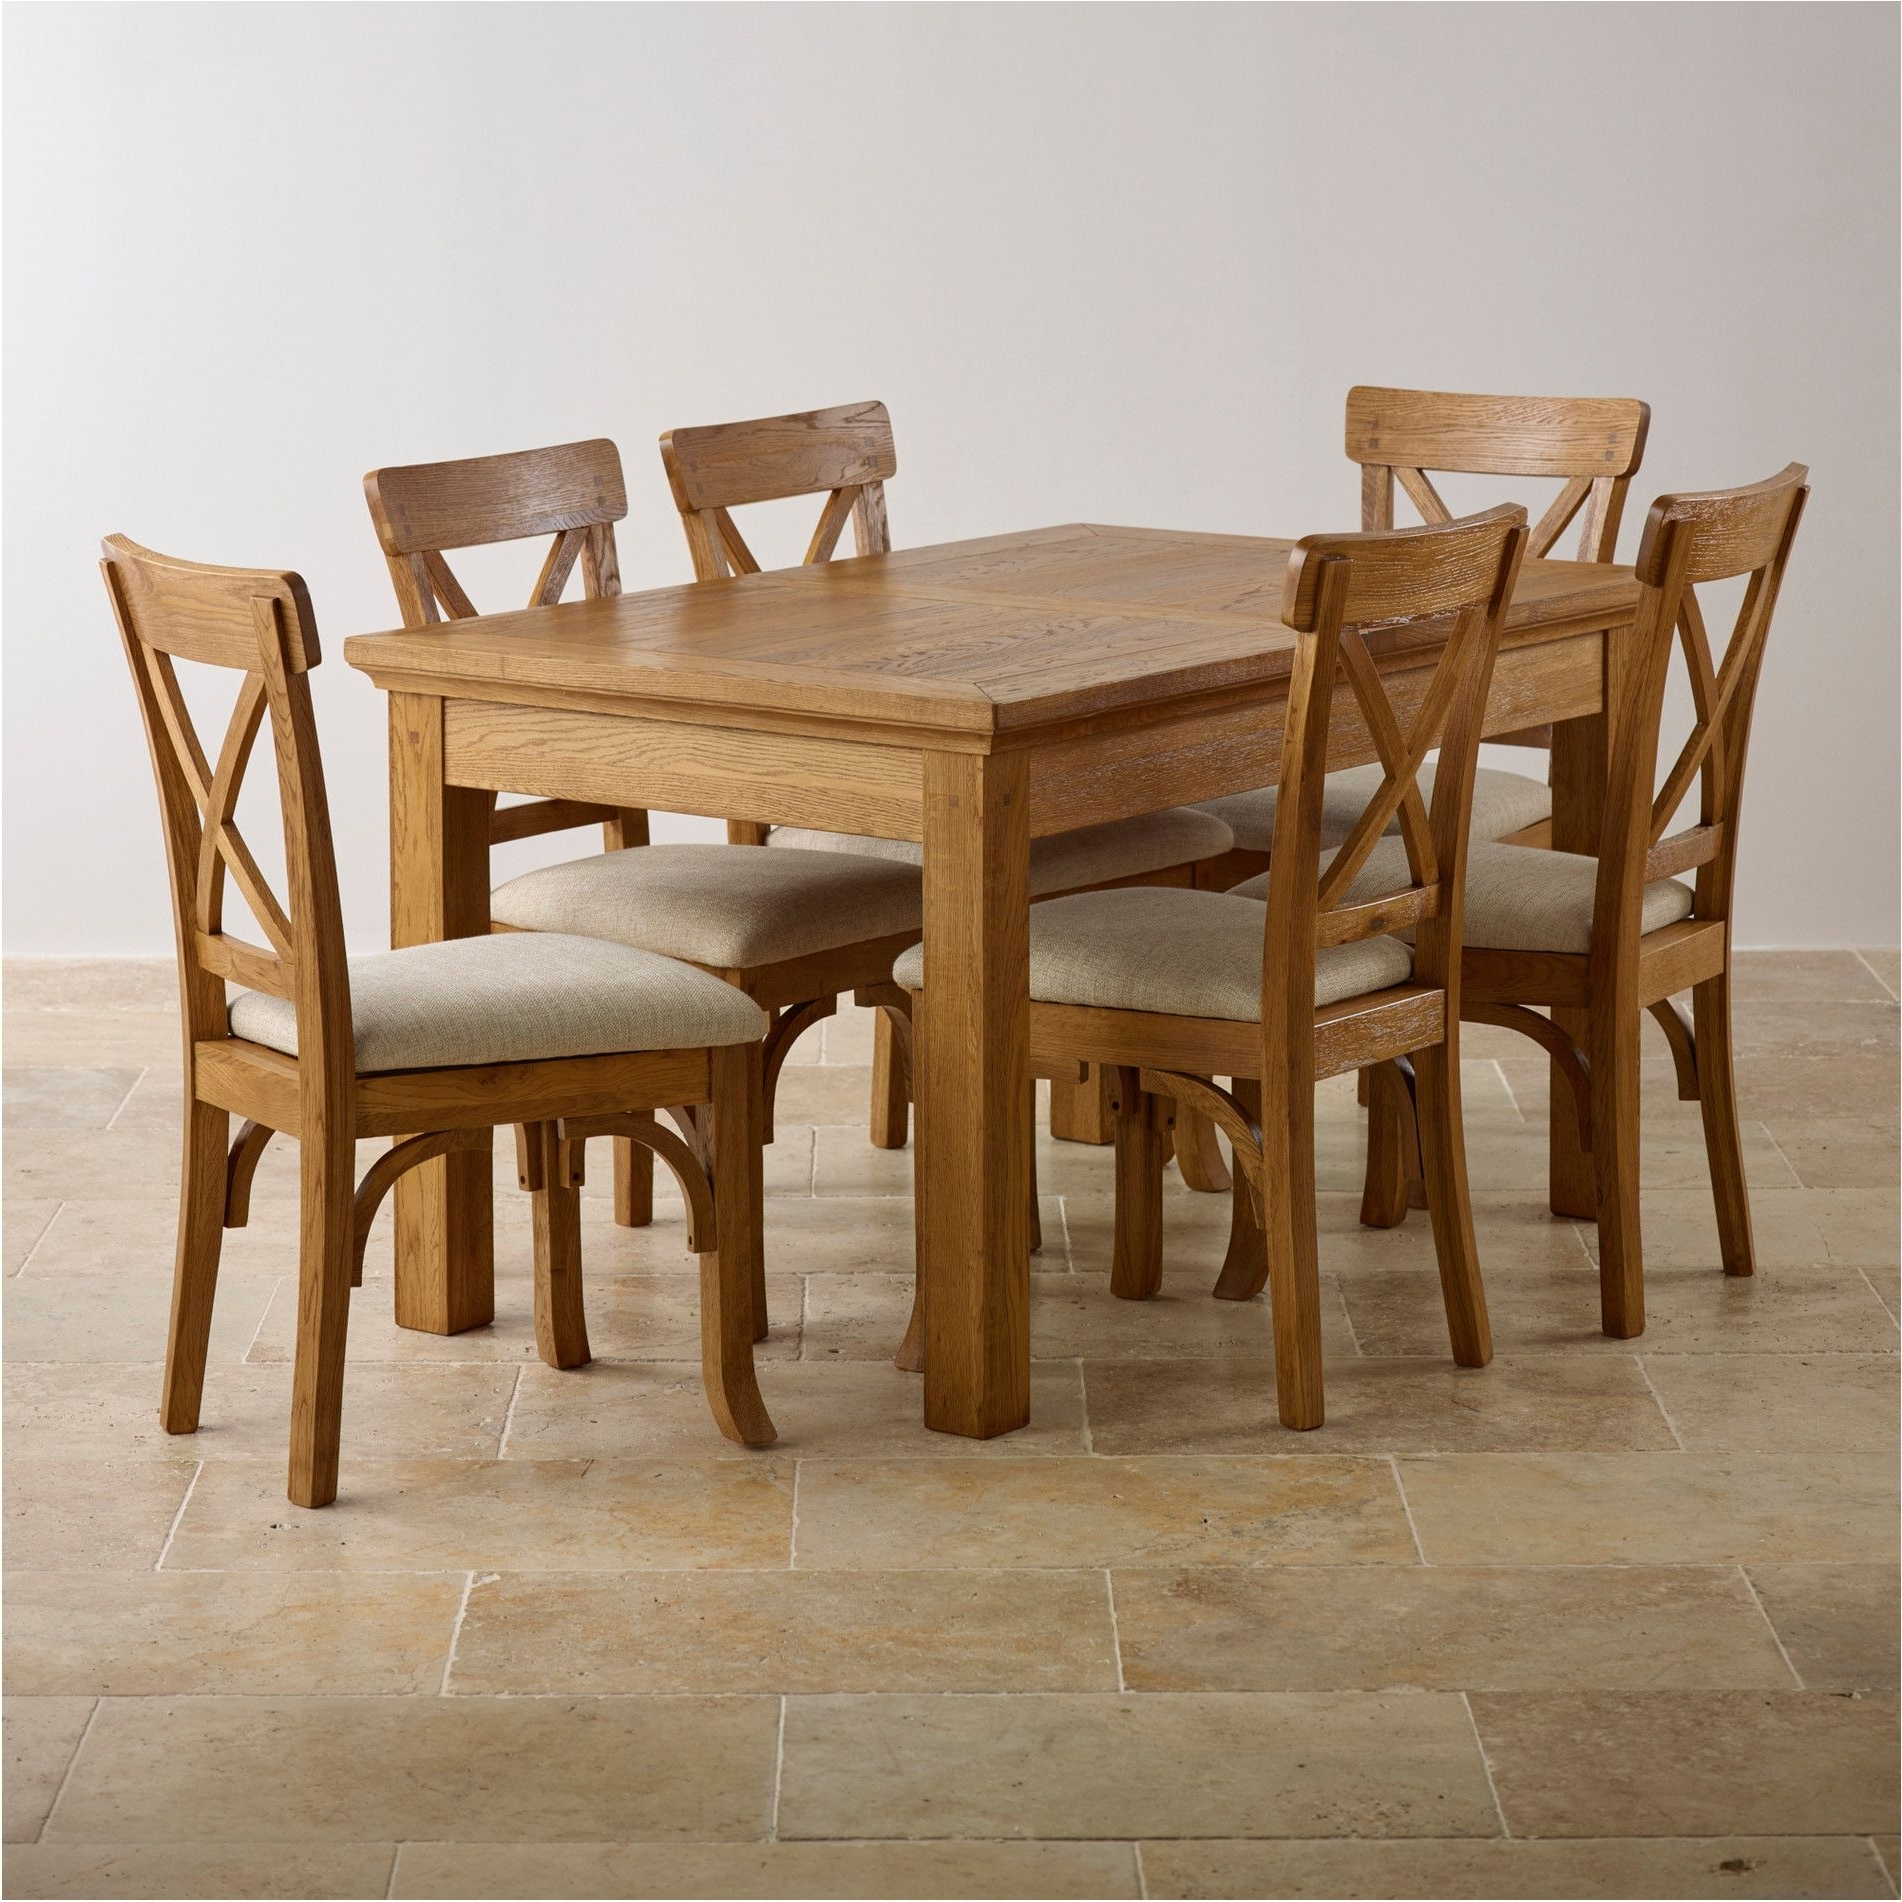 Incredible Top 72 Wicked Wooden Table Dining Room Chairs Solid Oak in Most Current Light Oak Dining Tables And Chairs